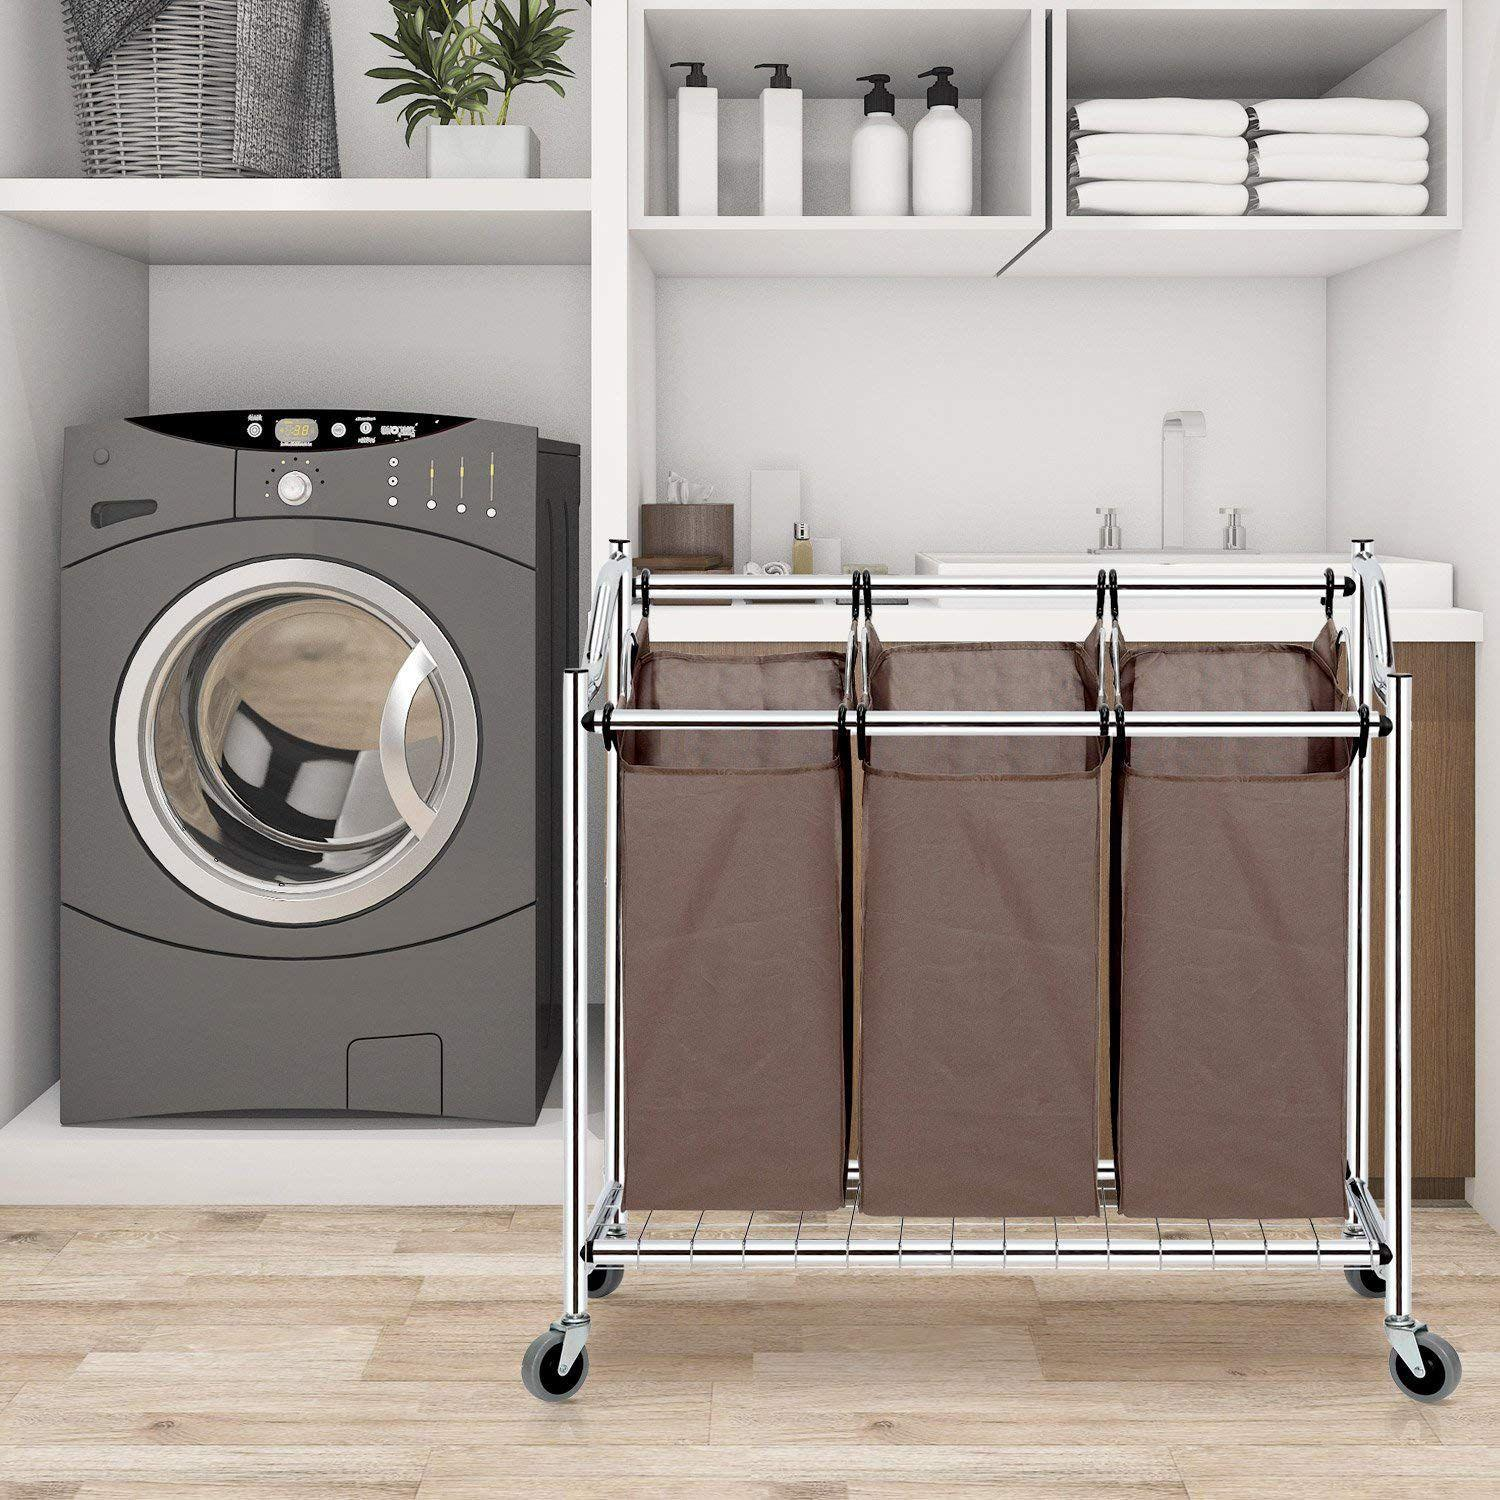 Laundry Room Design The Ultimate Guide Diamond Interiors